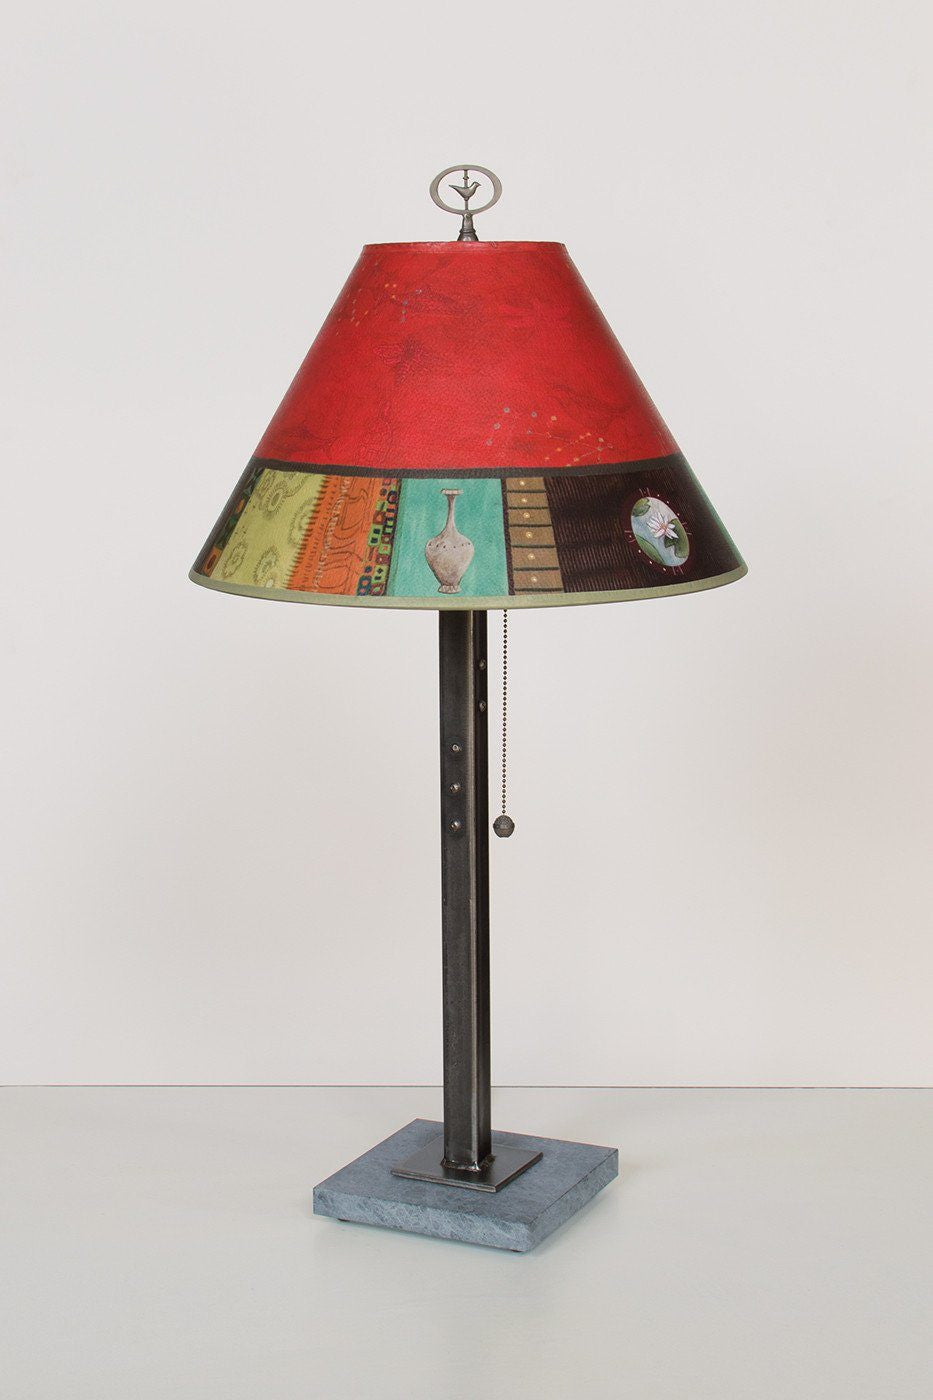 Steel Table Lamp on Marble with Medium Conical Shade in Red Match Lit